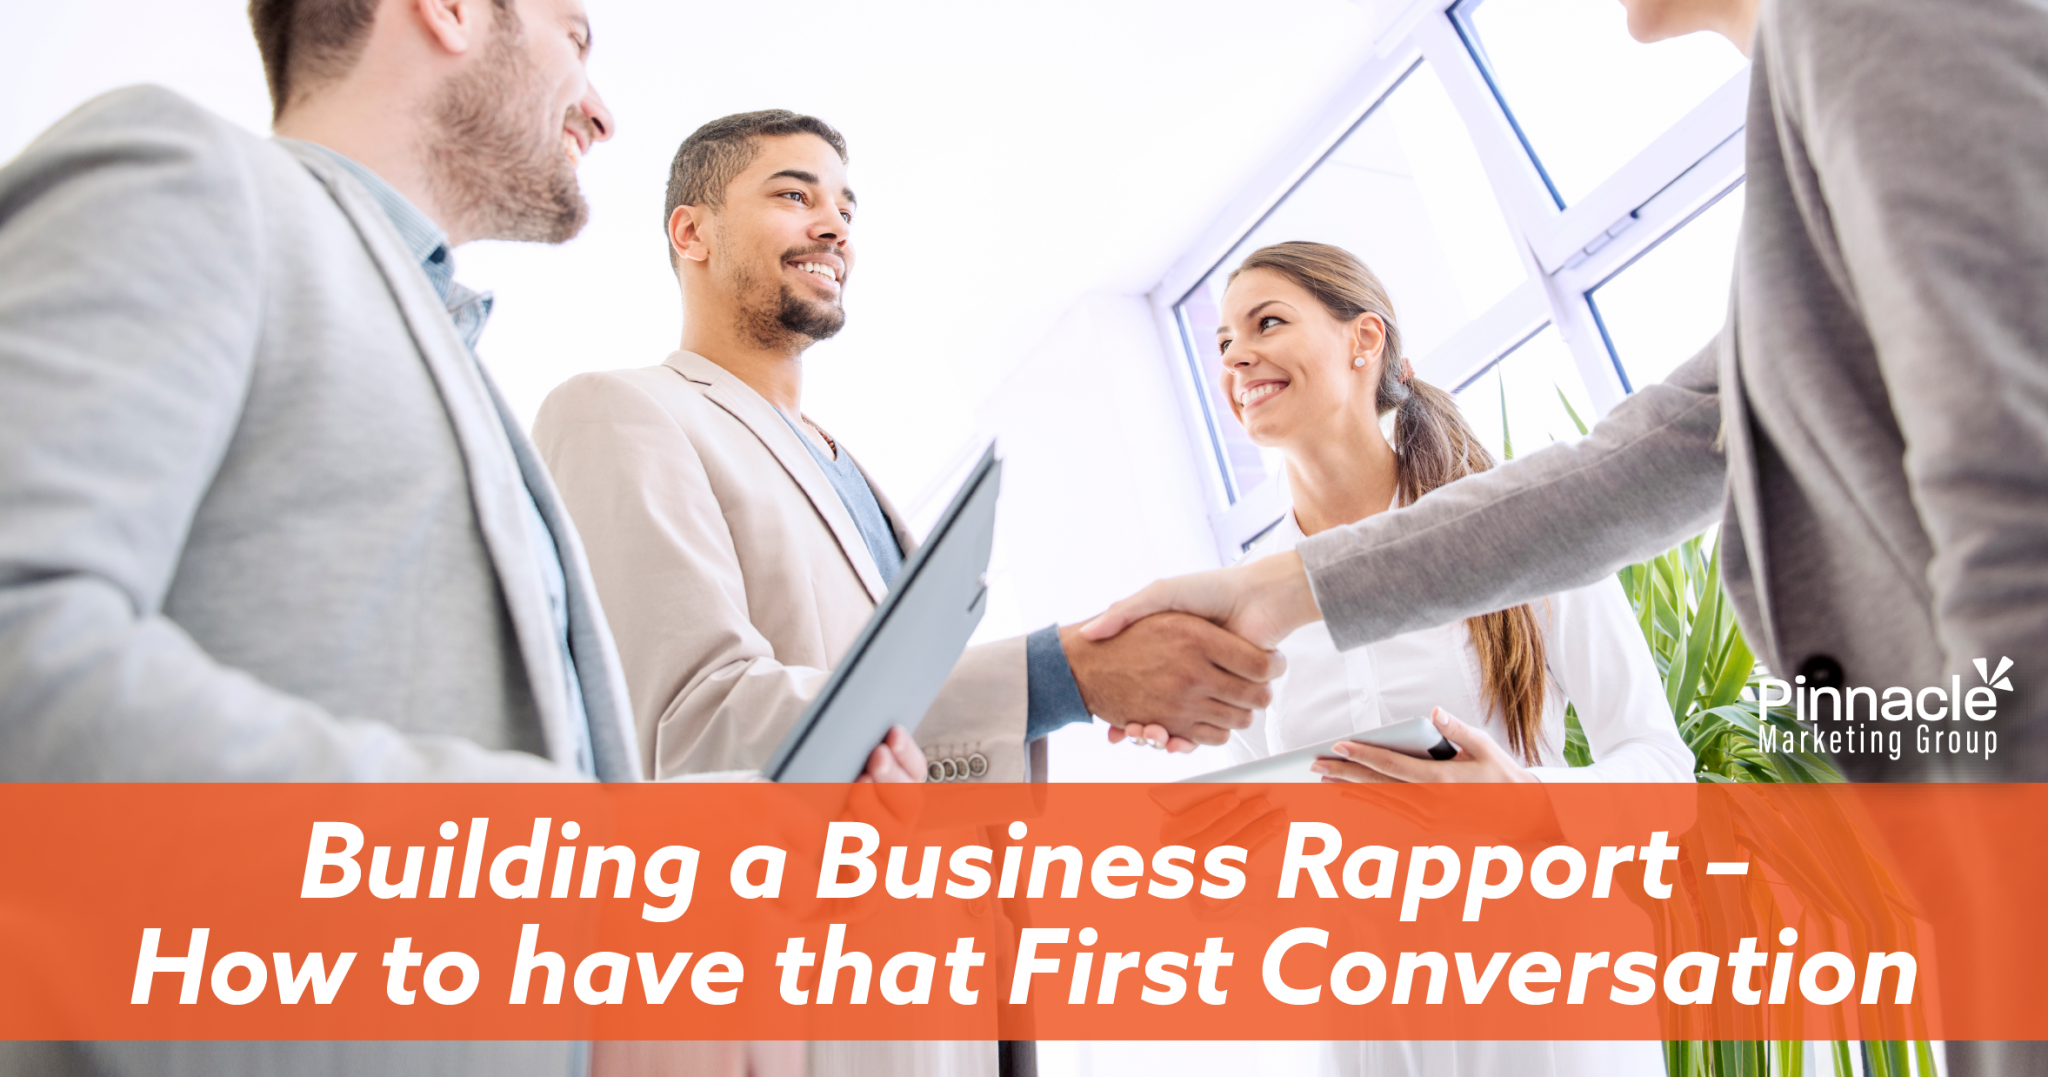 Building a business rapport - how to have that first conversation blog header